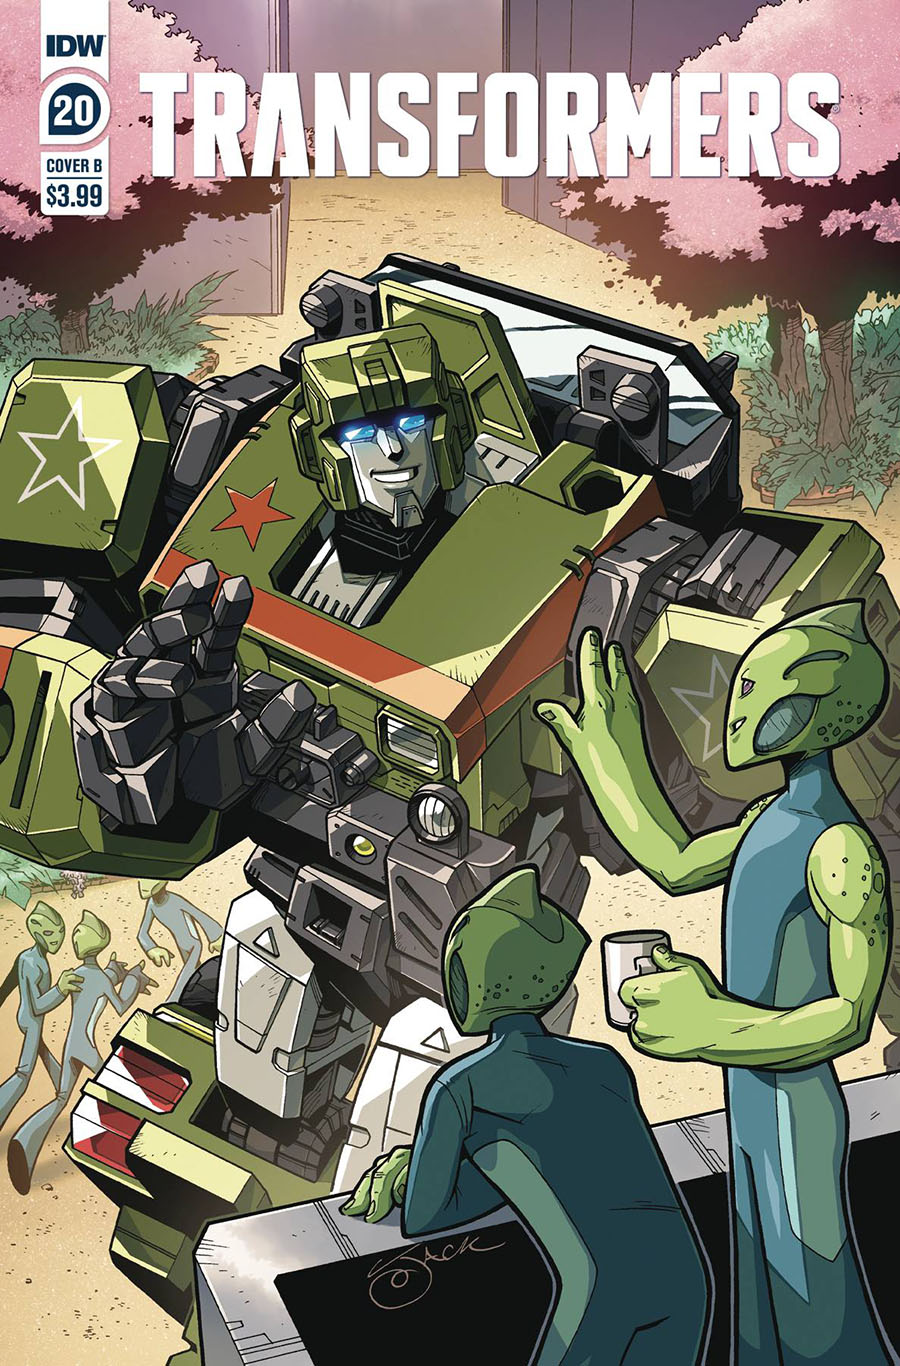 Transformers Vol 4 #20 Cover B Variant Jack Lawrence Cover